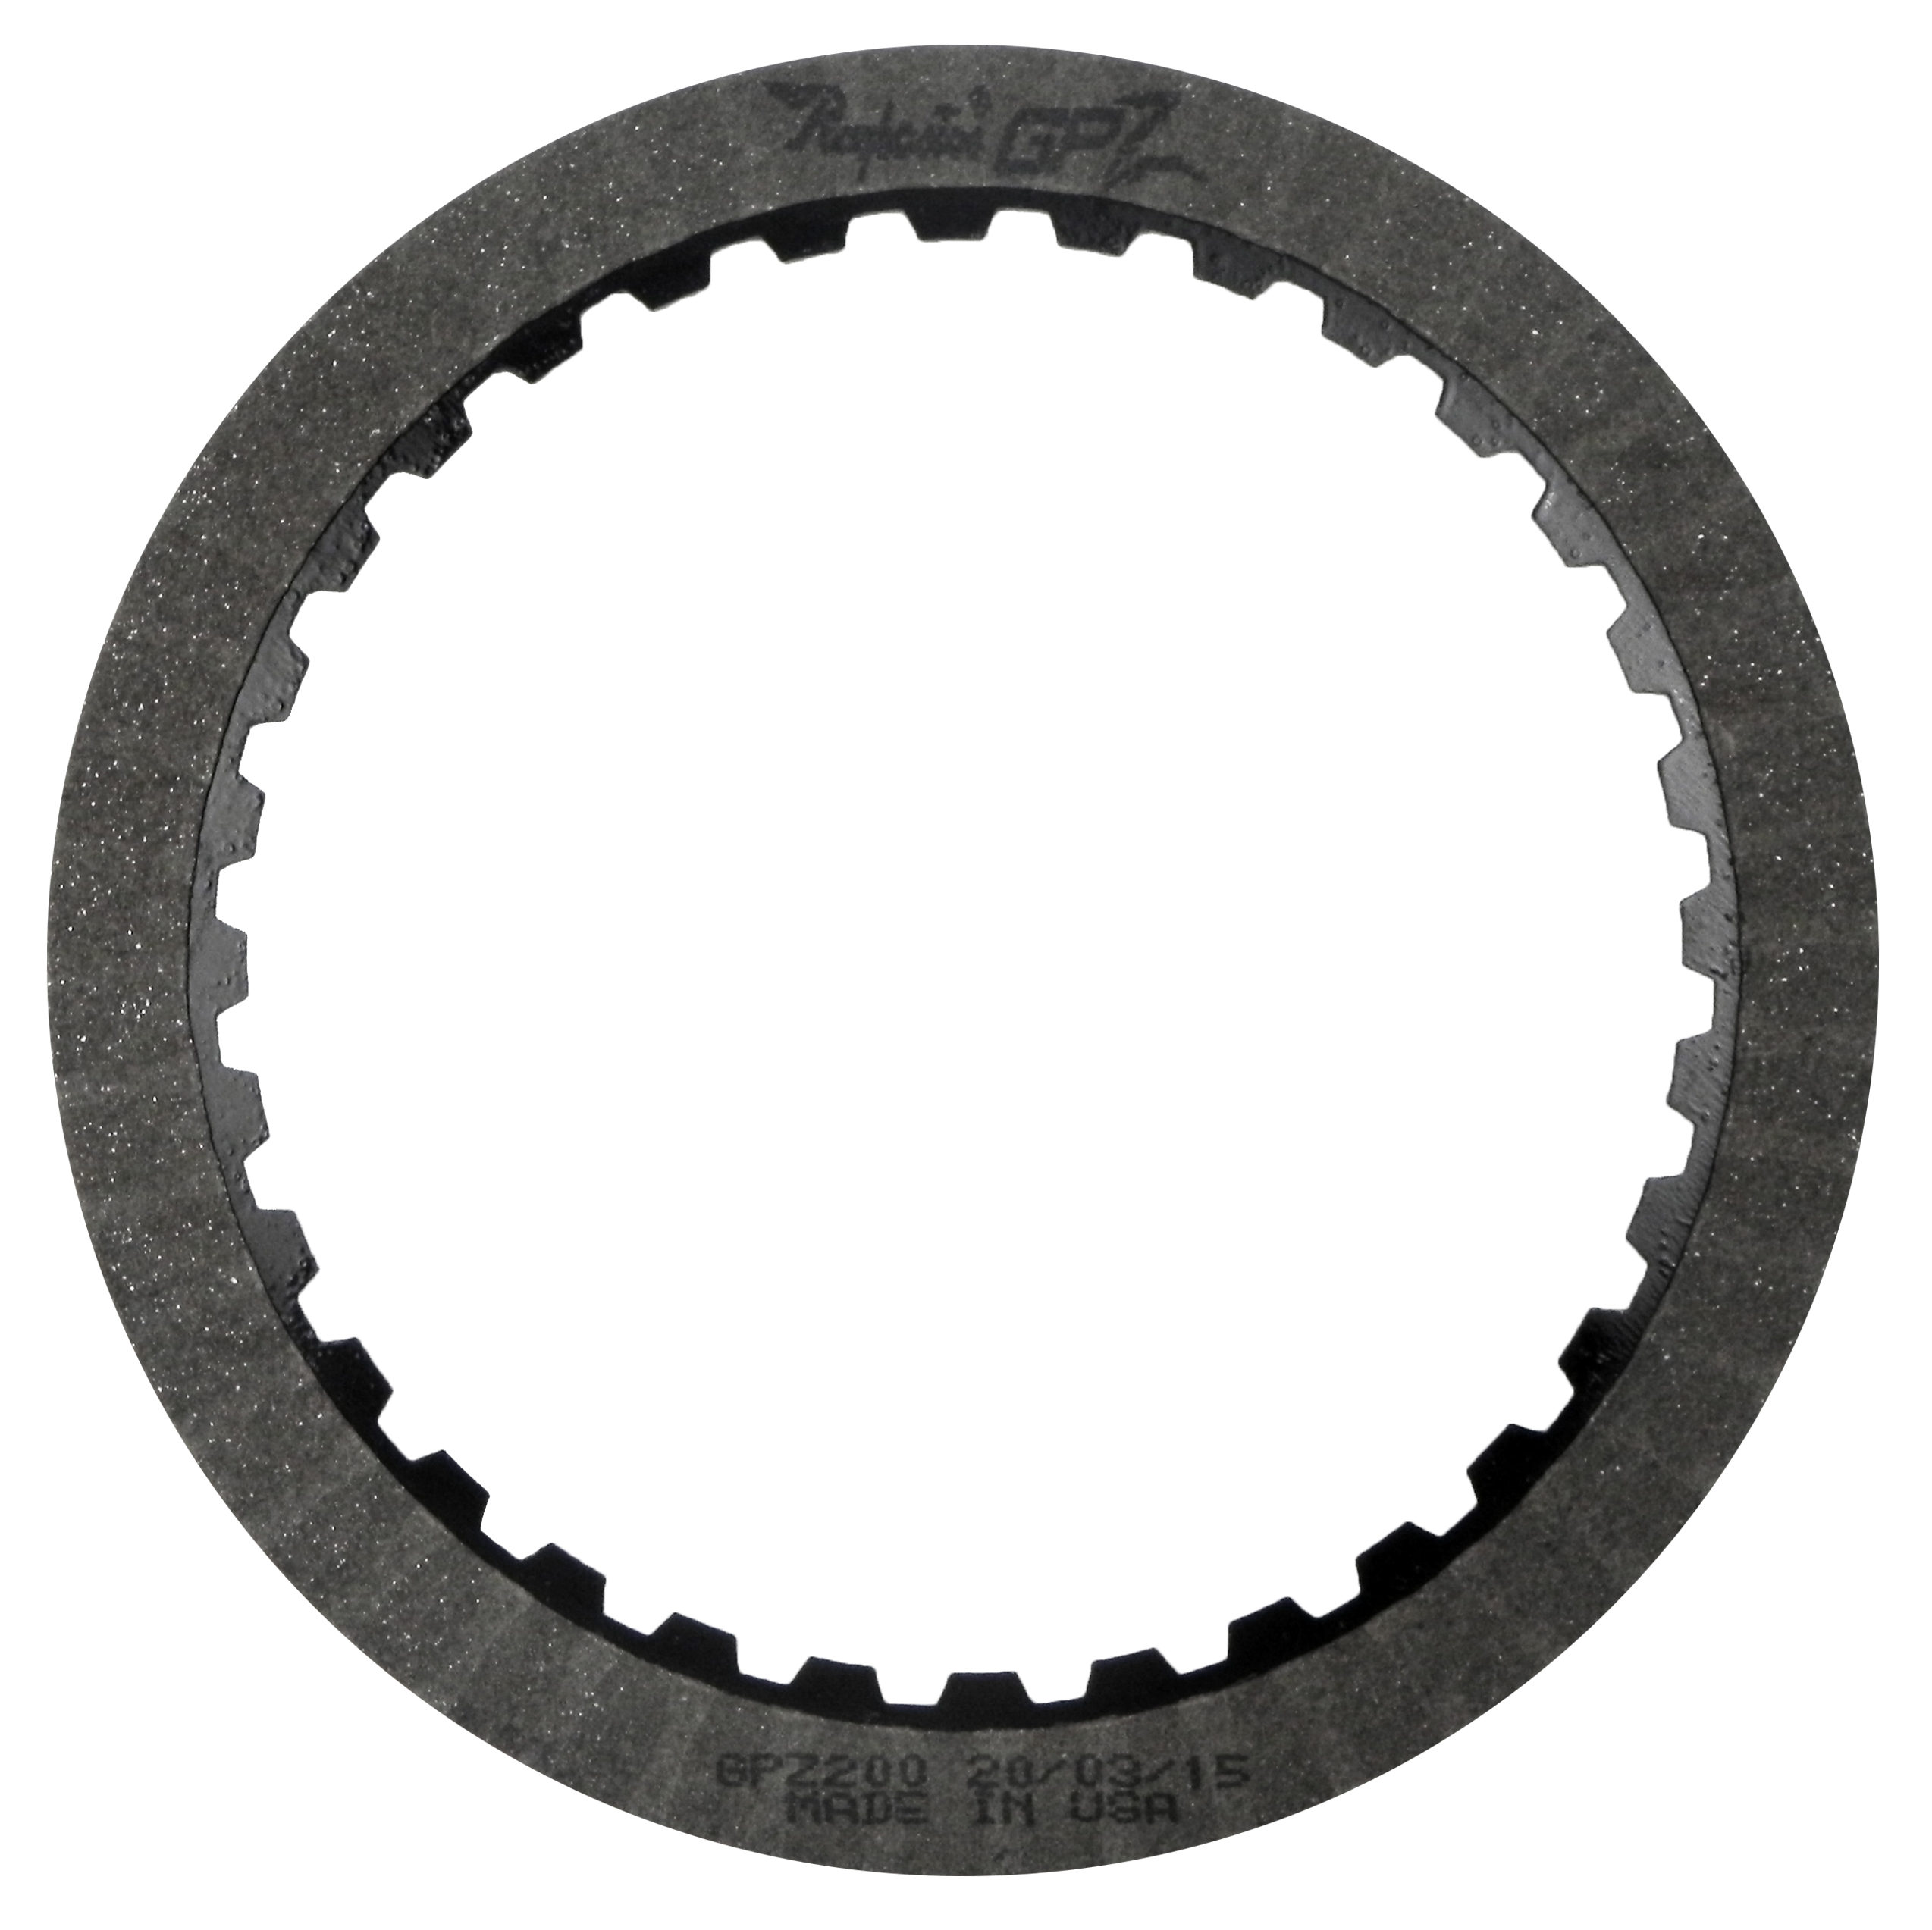 6R140 GPZ Friction Clutch Plate